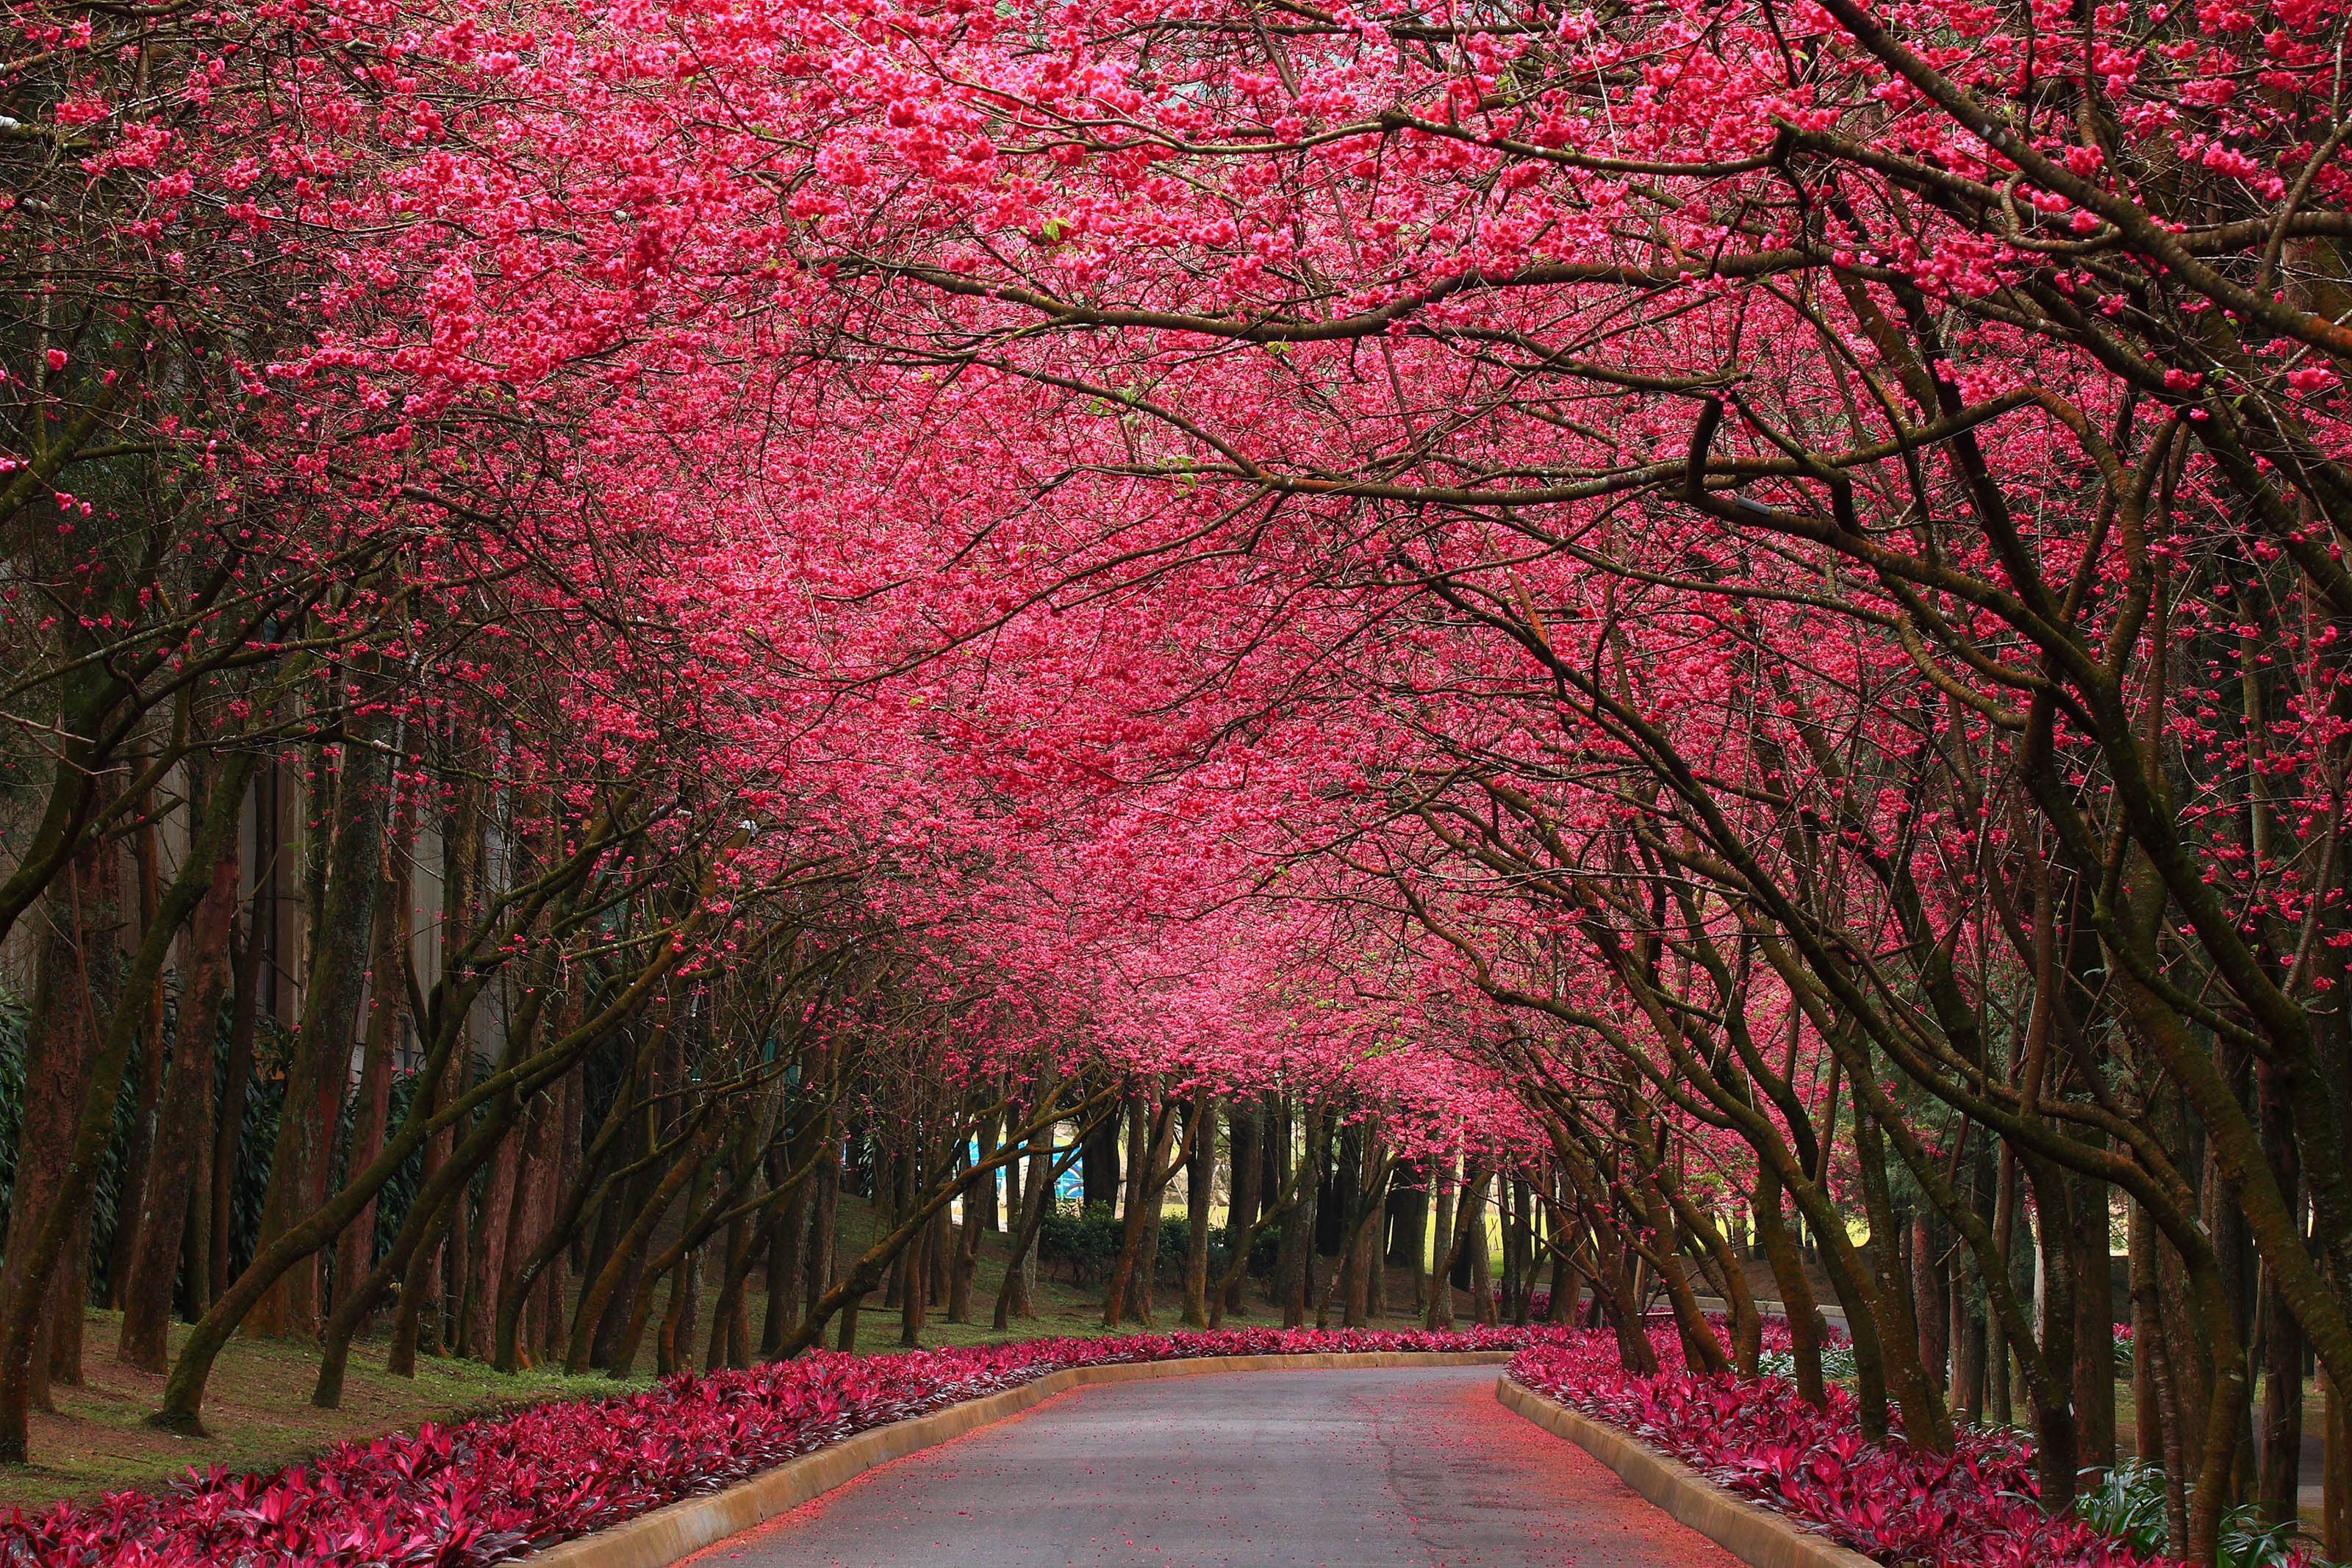 Nature Wallpaper In Hd With Flowering Trees Pink